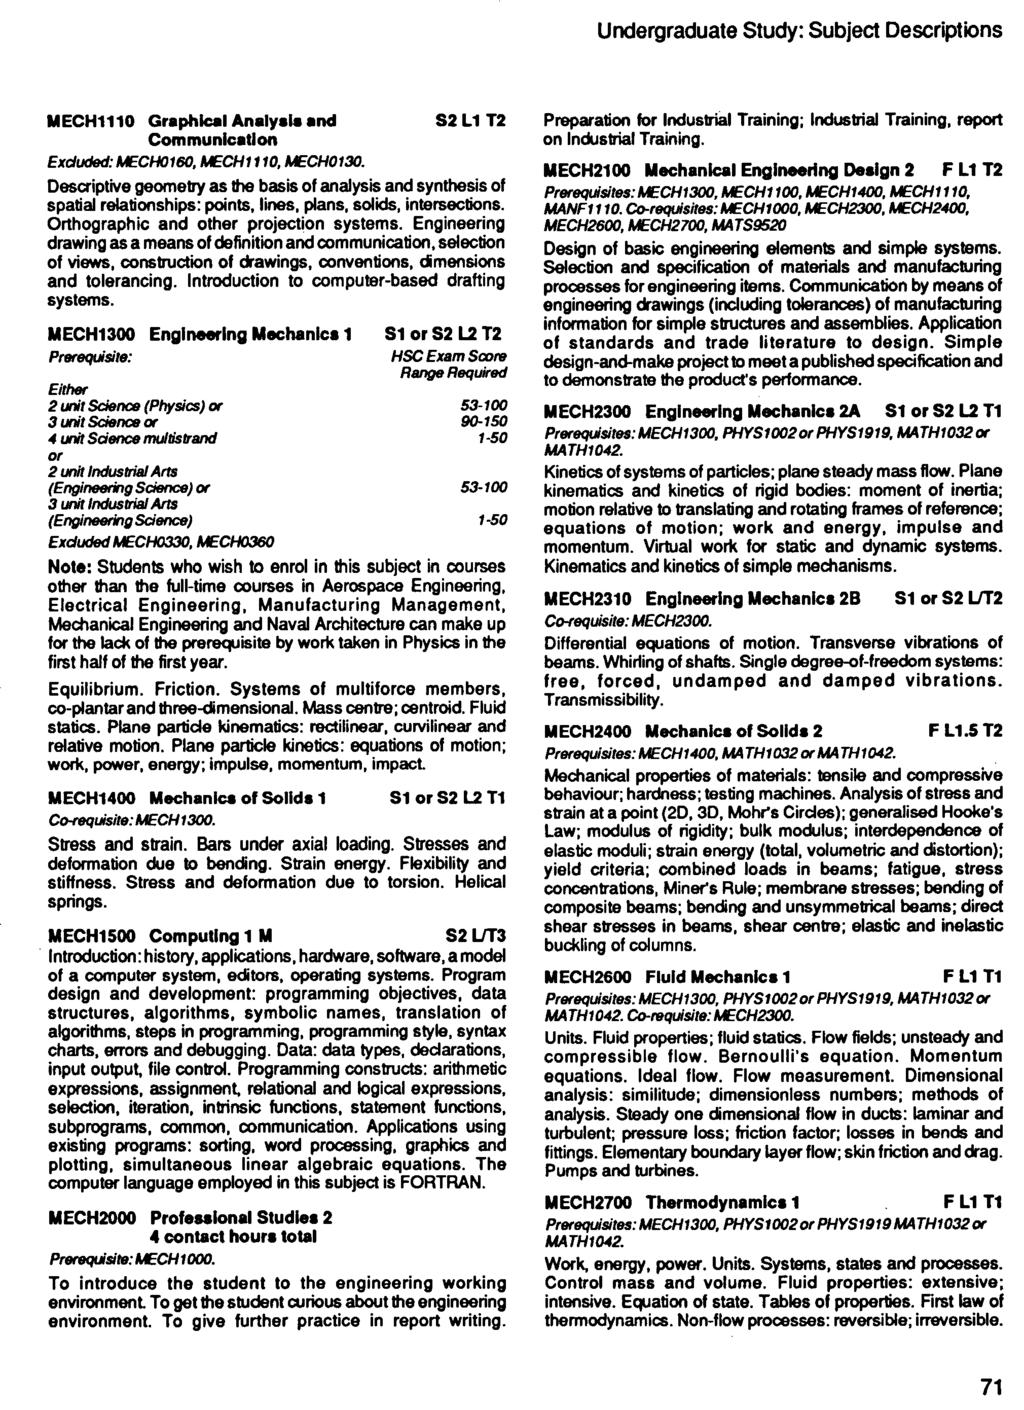 N O The University Of New South Wales Engineering 1992 Faculty Show Transcribed Image Text Draw Shear And Bendingmoment Diagrams Undergraduate Study Subject Descriptions Mech1110 Graphical Analysis Communication S2 Li T2 Excluded Mech0160